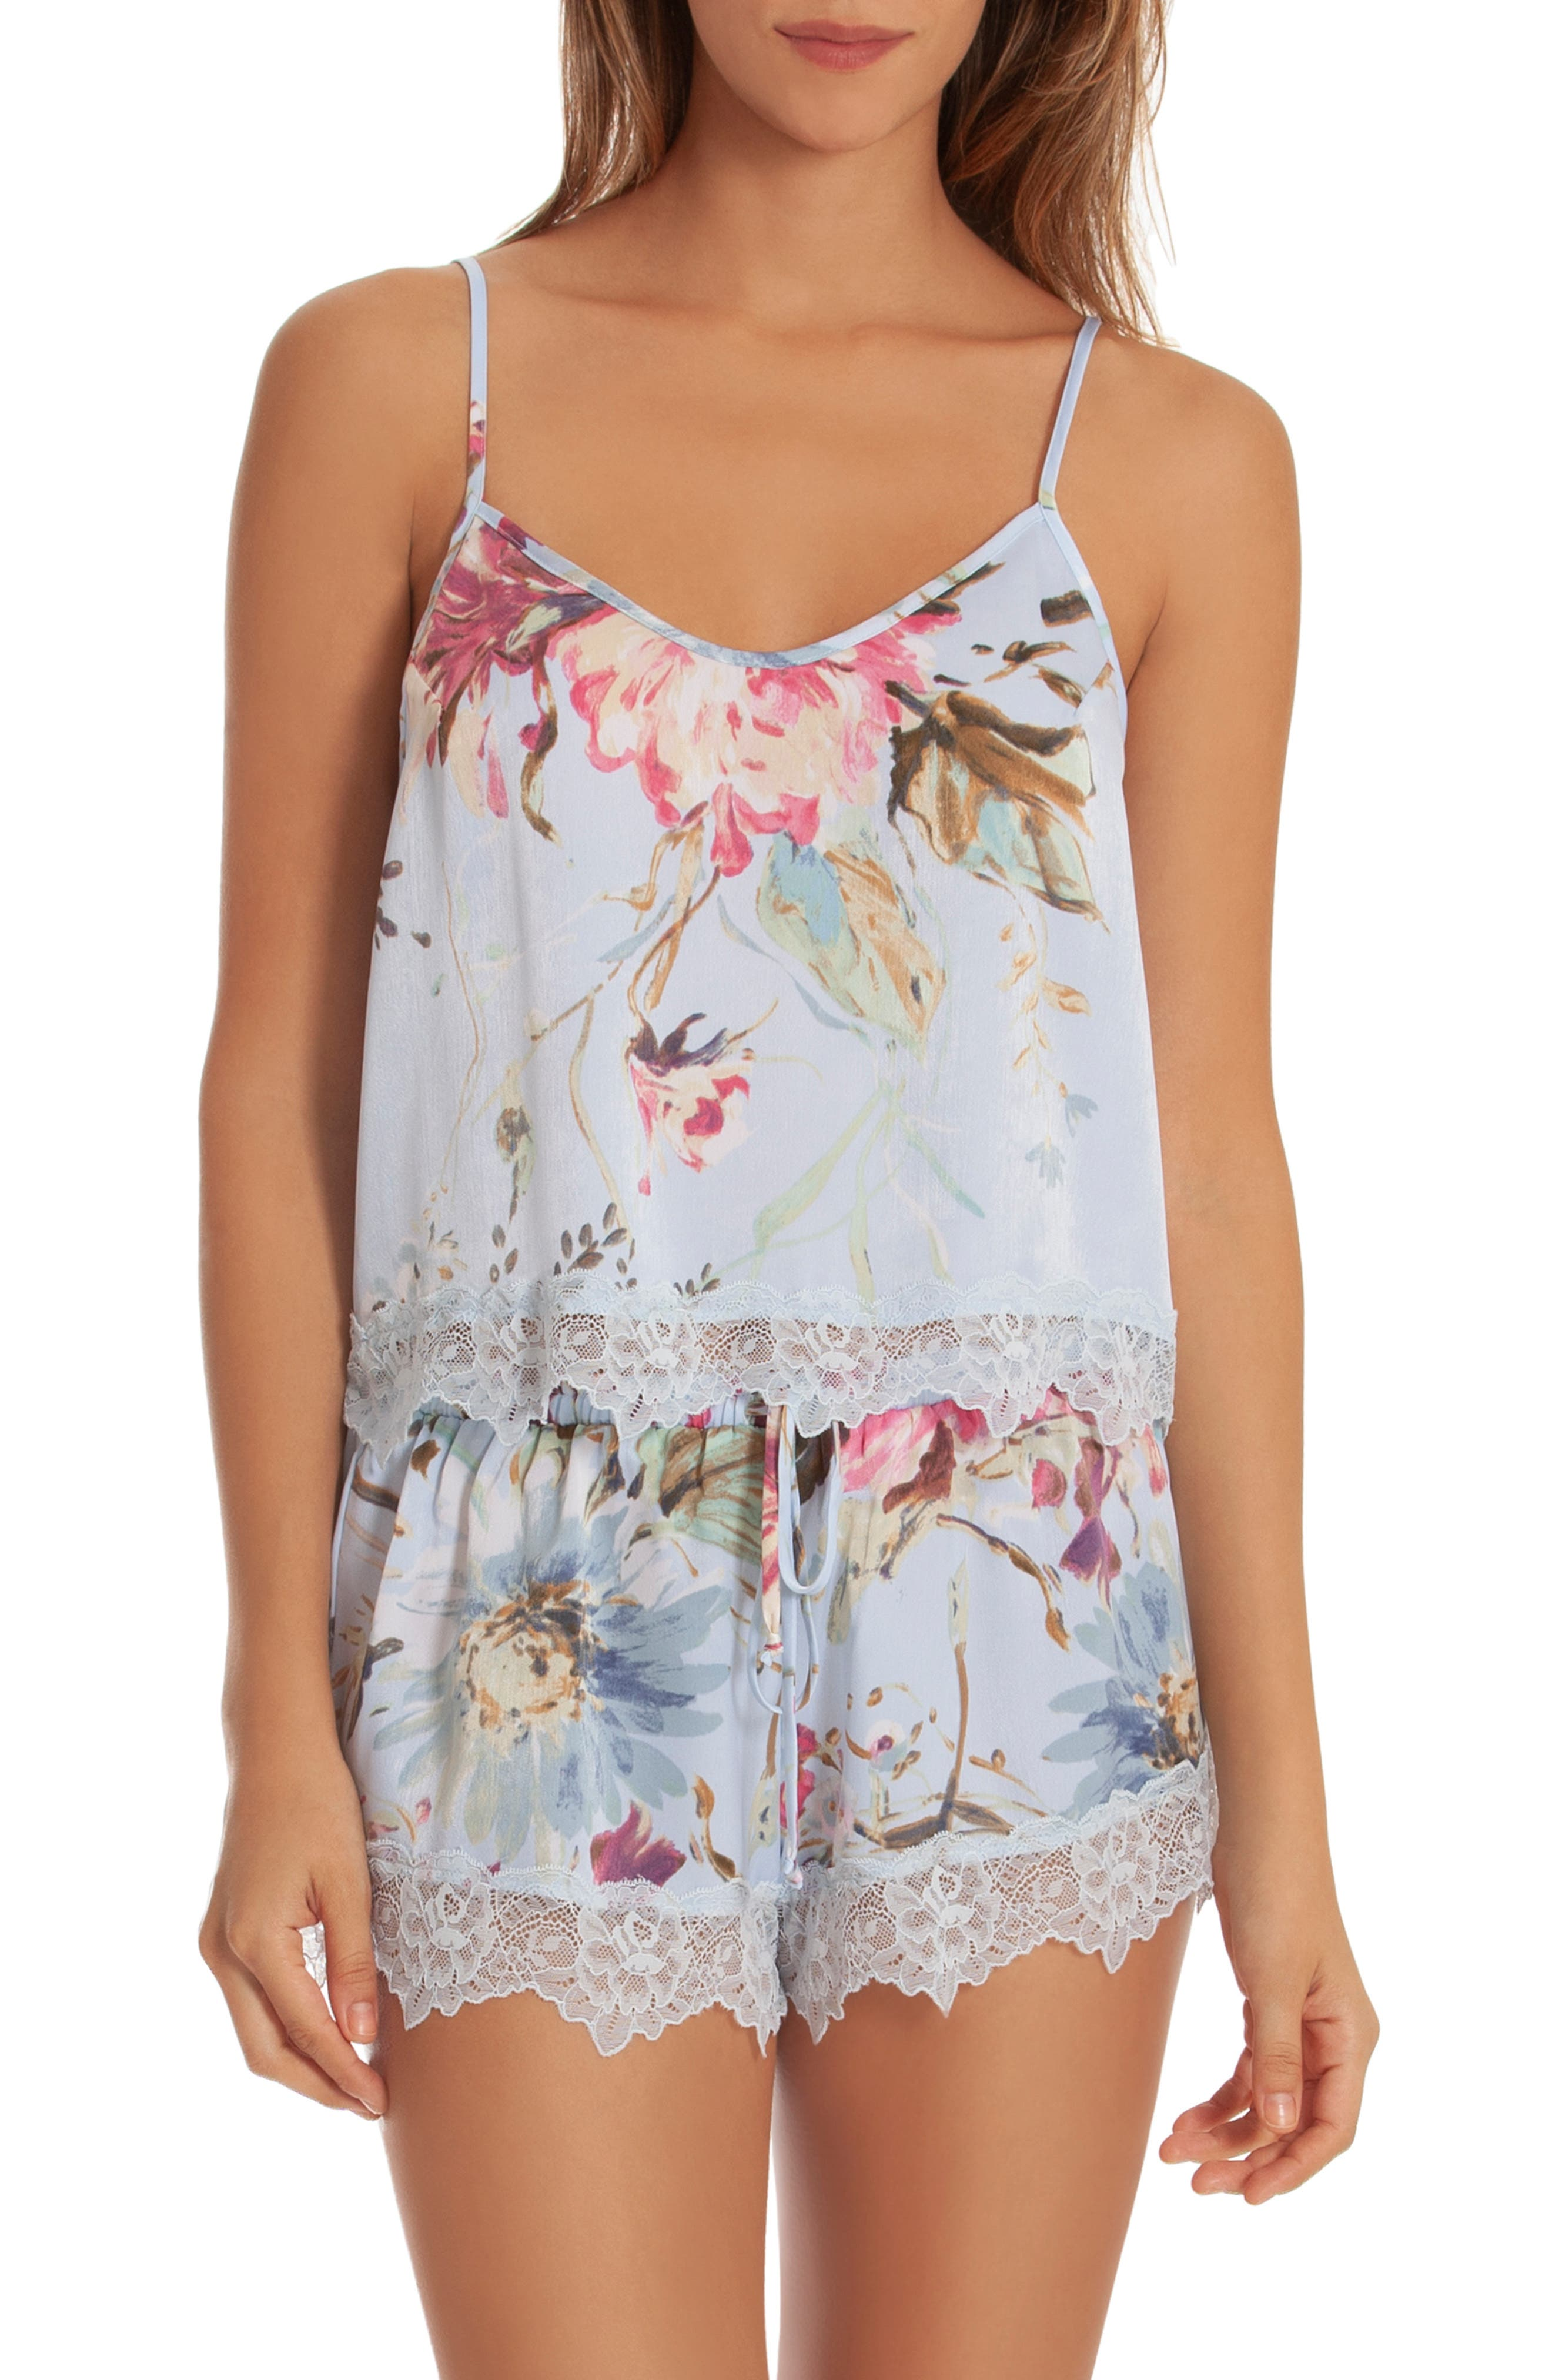 IN BLOOM BY JONQUIL Chiffon Short Pajamas, Main, color, BLUE ROSE PRINT